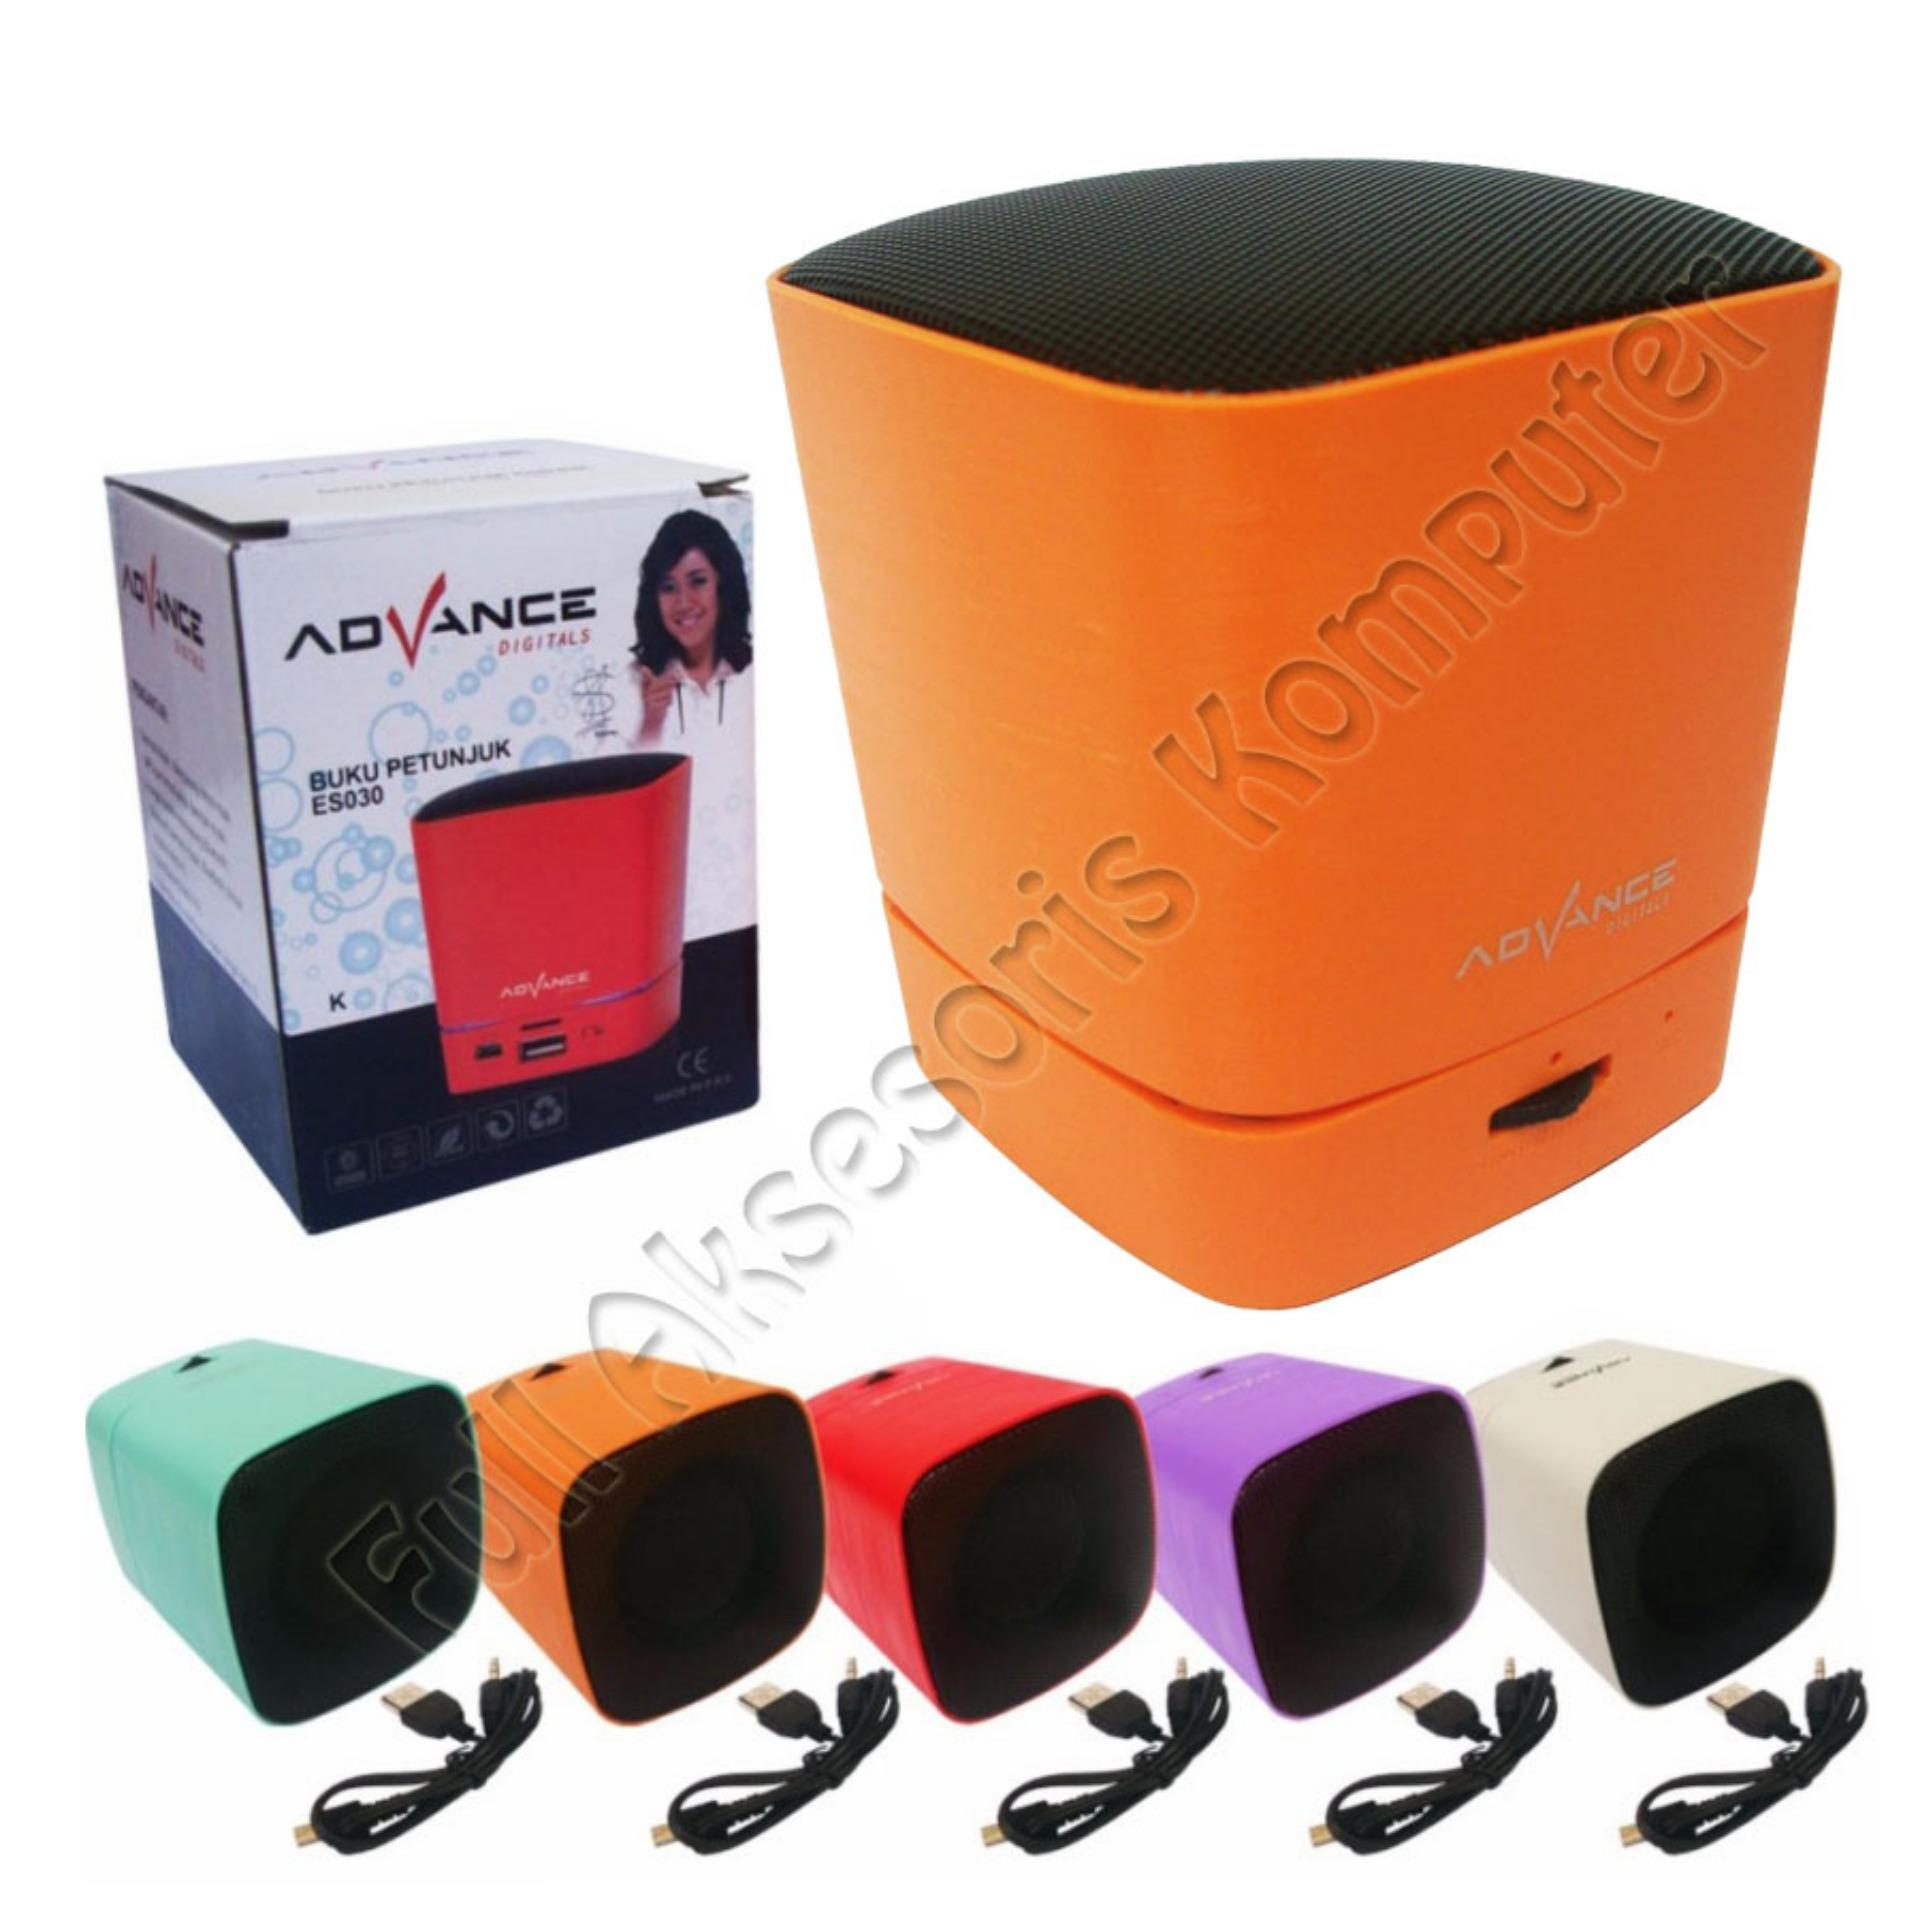 Ulasan Advance Mini Speaker Portable Bluetooth Es030K Orange